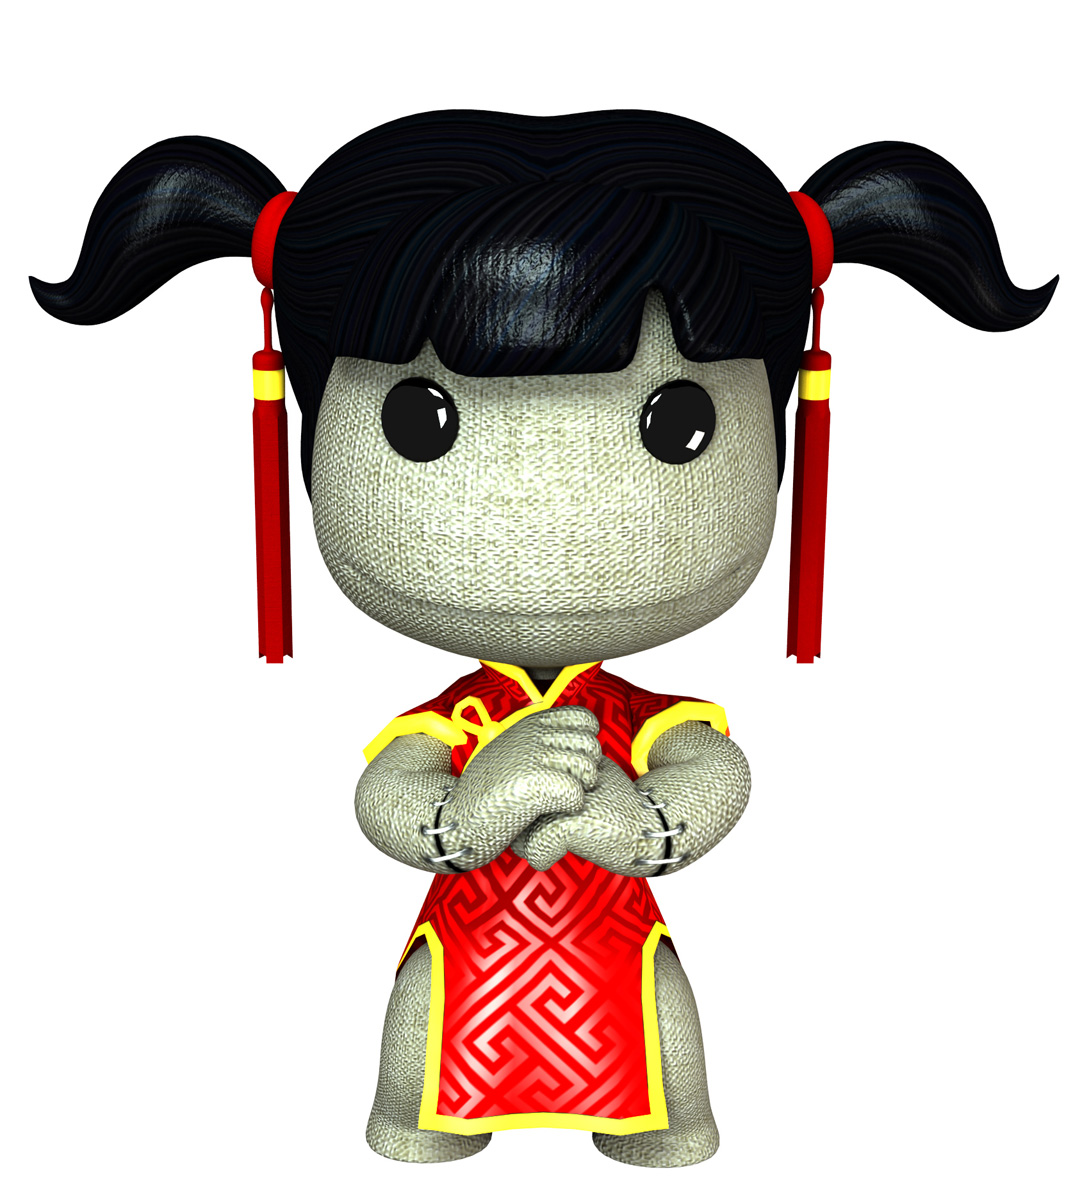 Littlebigplanet Celebrates The Chinese New Year With Cute